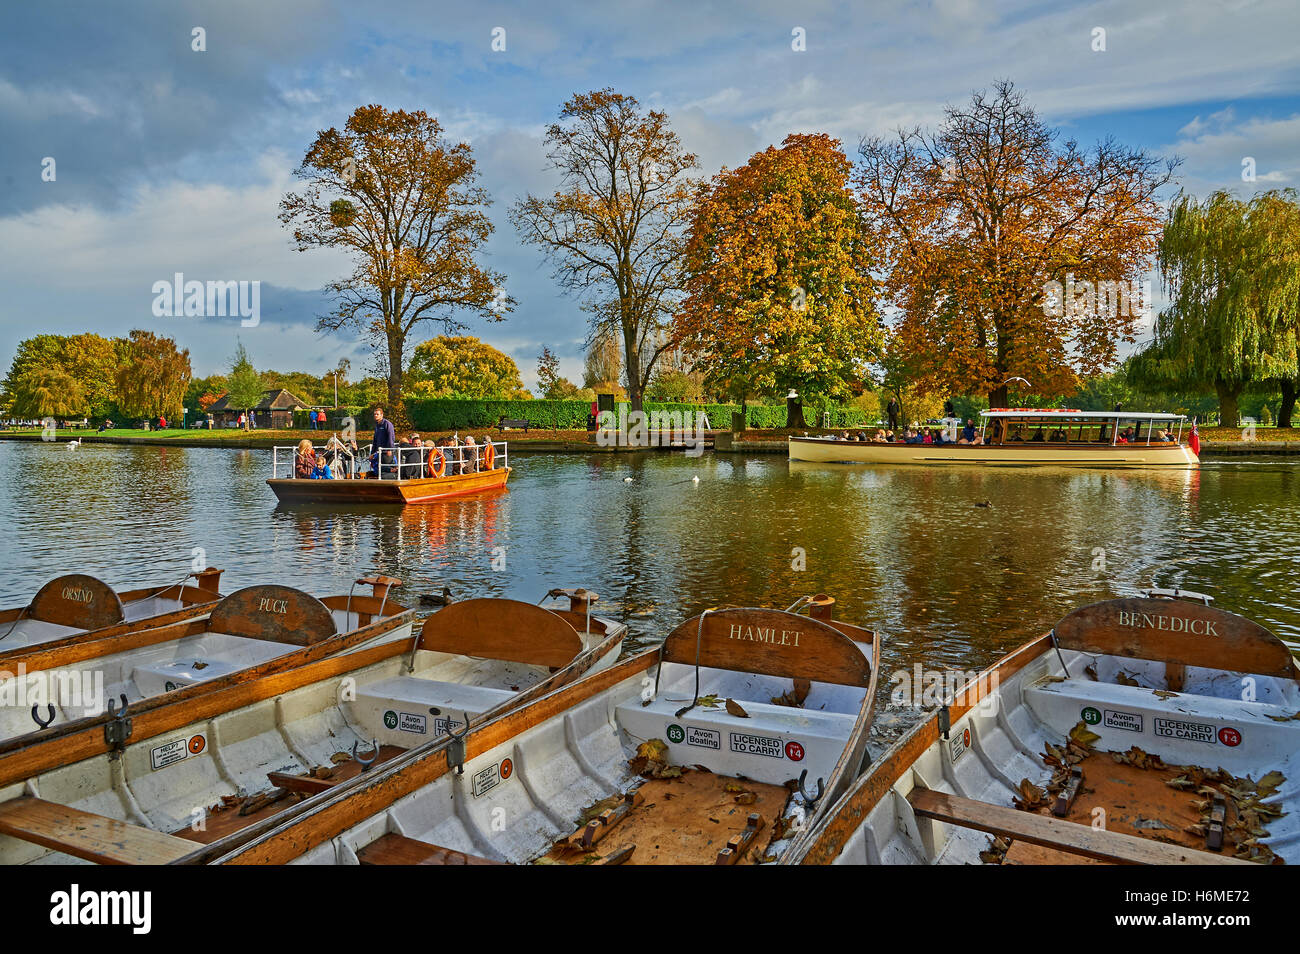 The hand operated chain ferry across the River Avon in Stratford upon Avon, Warwickshire. - Stock Image